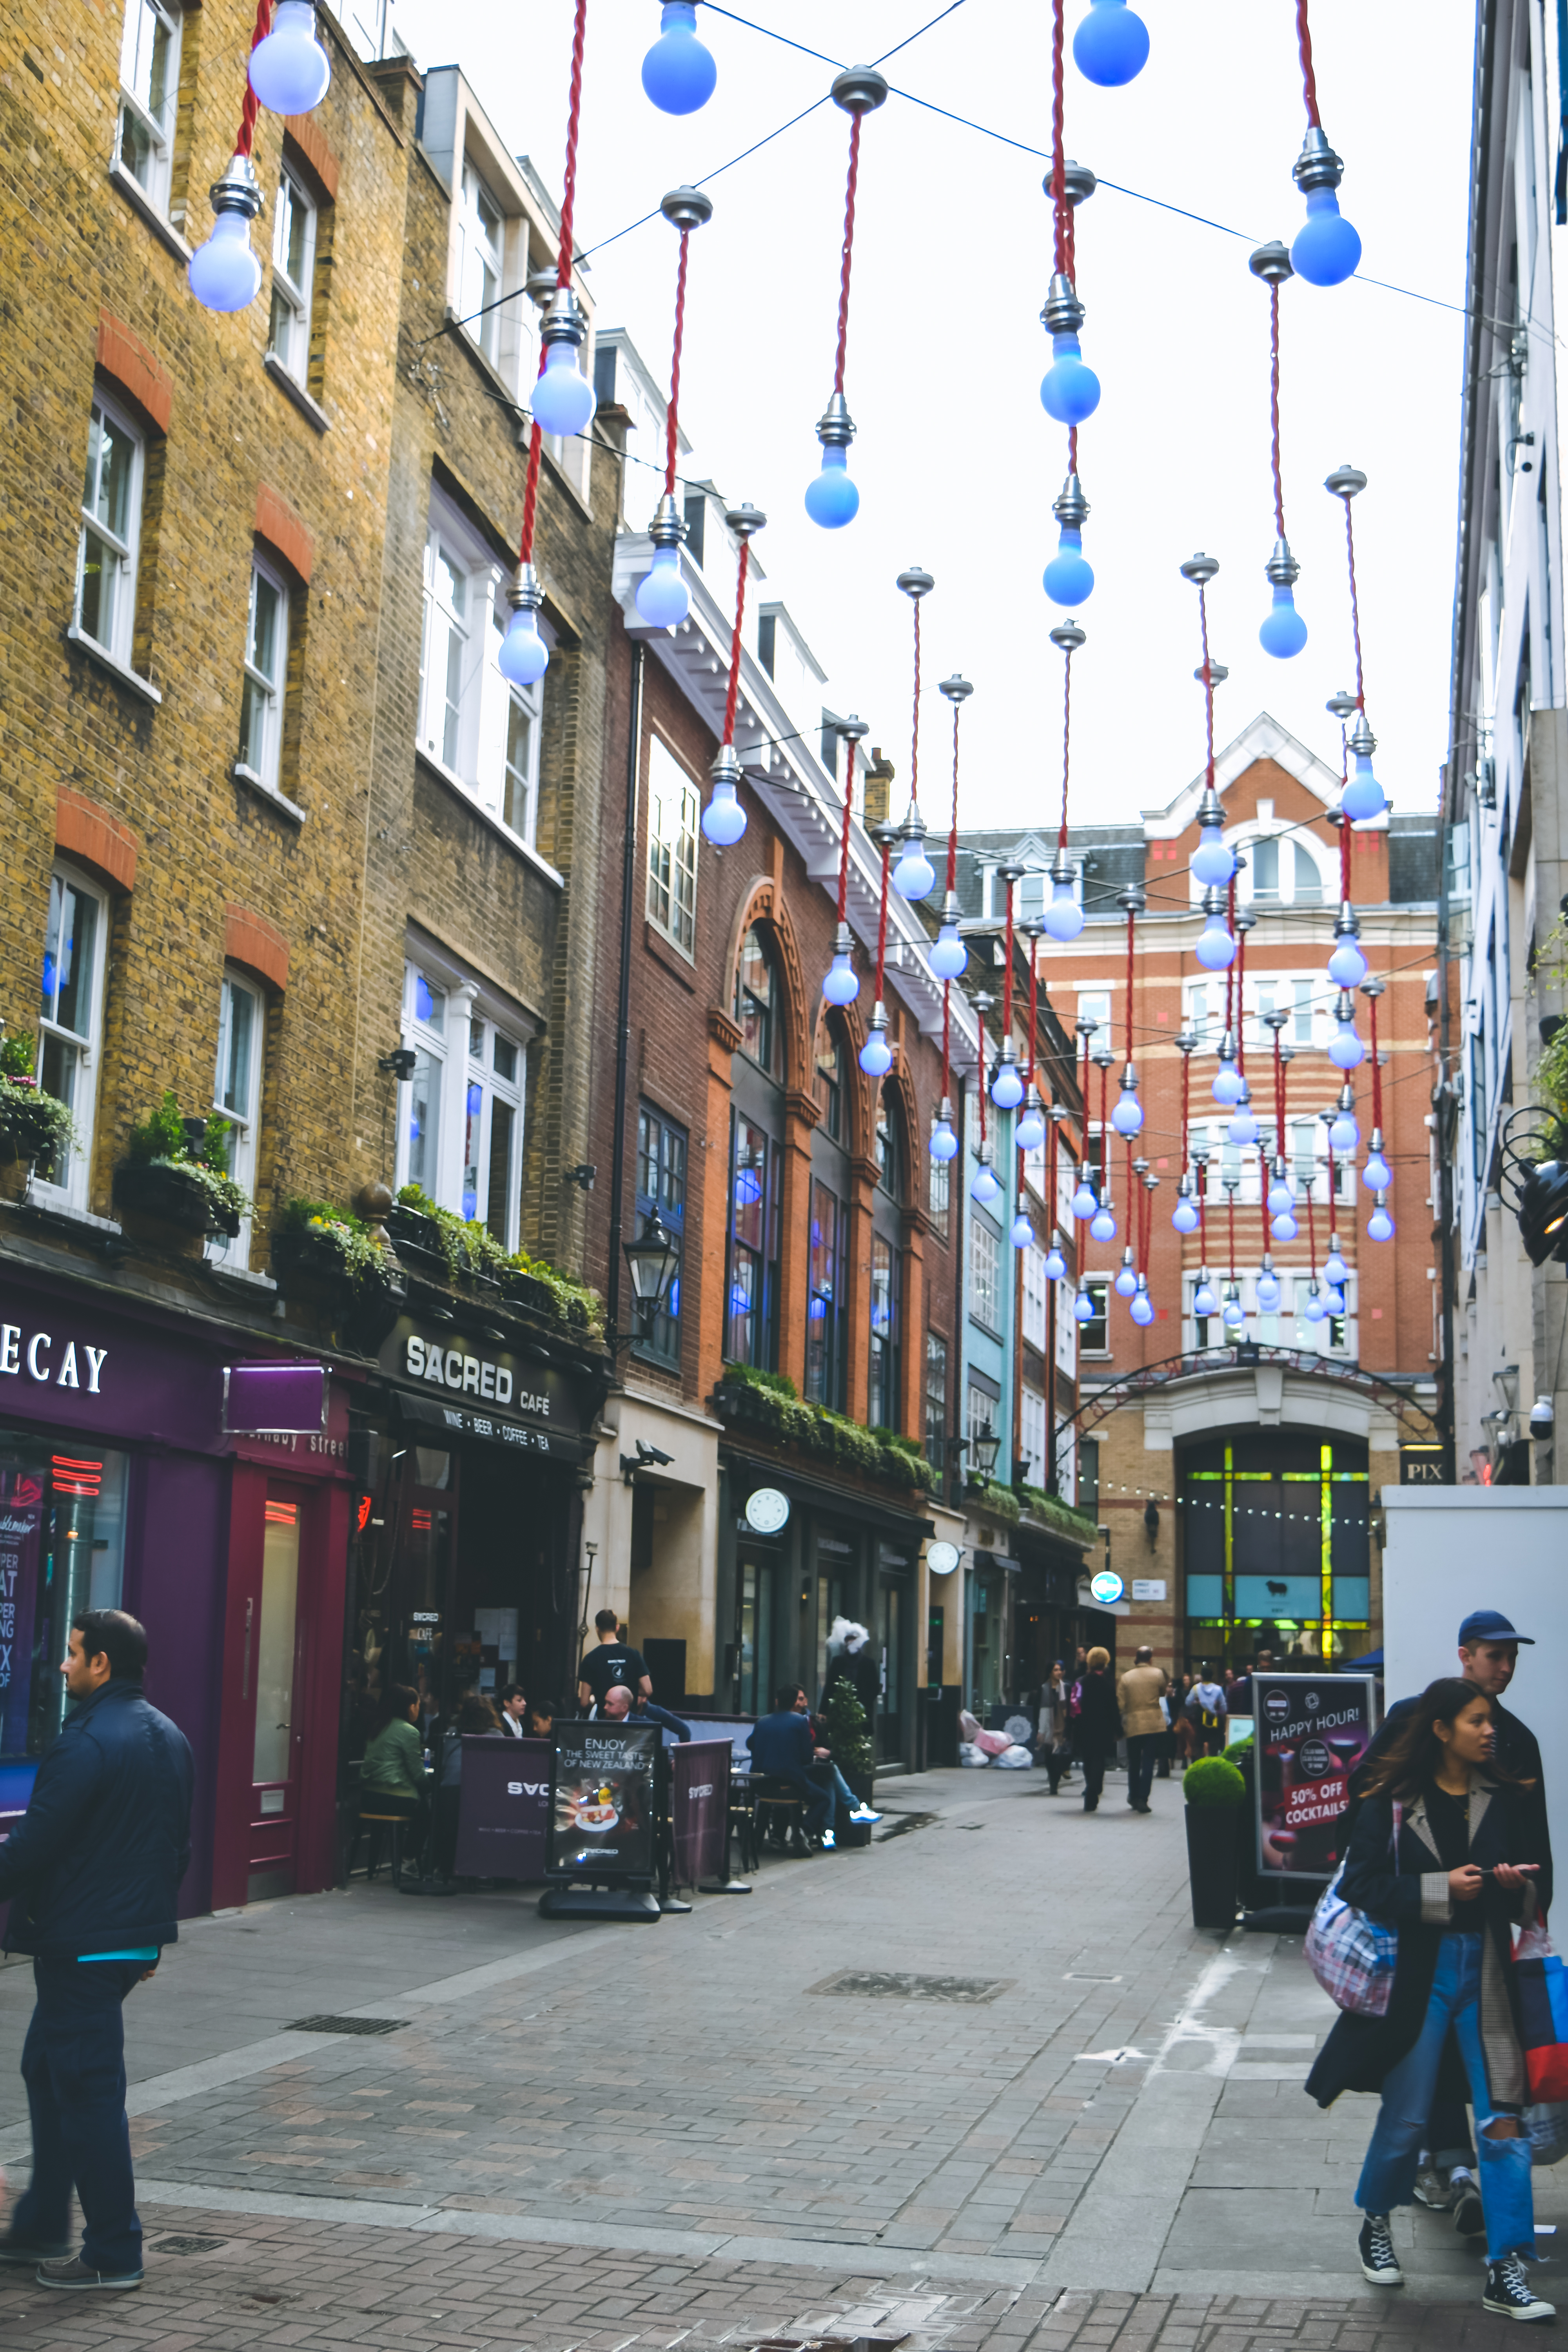 Travel guide to london uk blog what to do what to see where to go 3 days-12-2